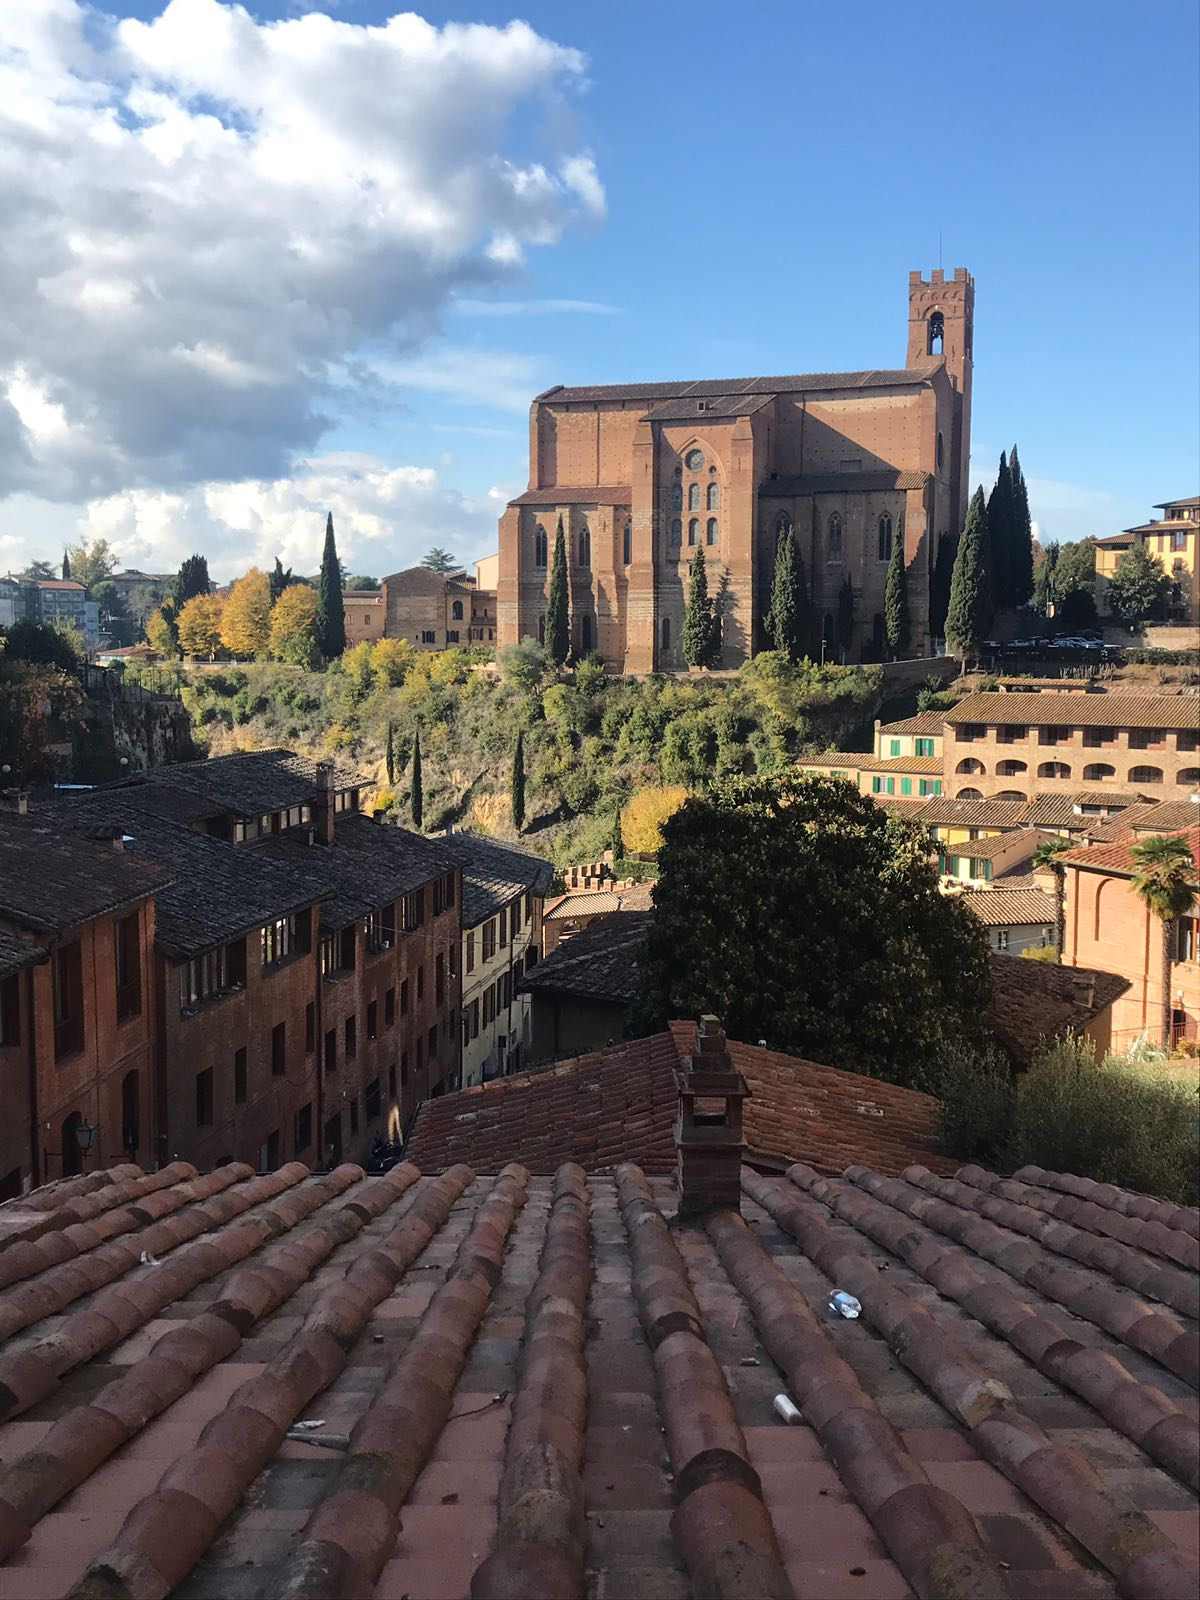 A massive church, a park and a terrace of houses on a hill all seem from a rooftop in Siena